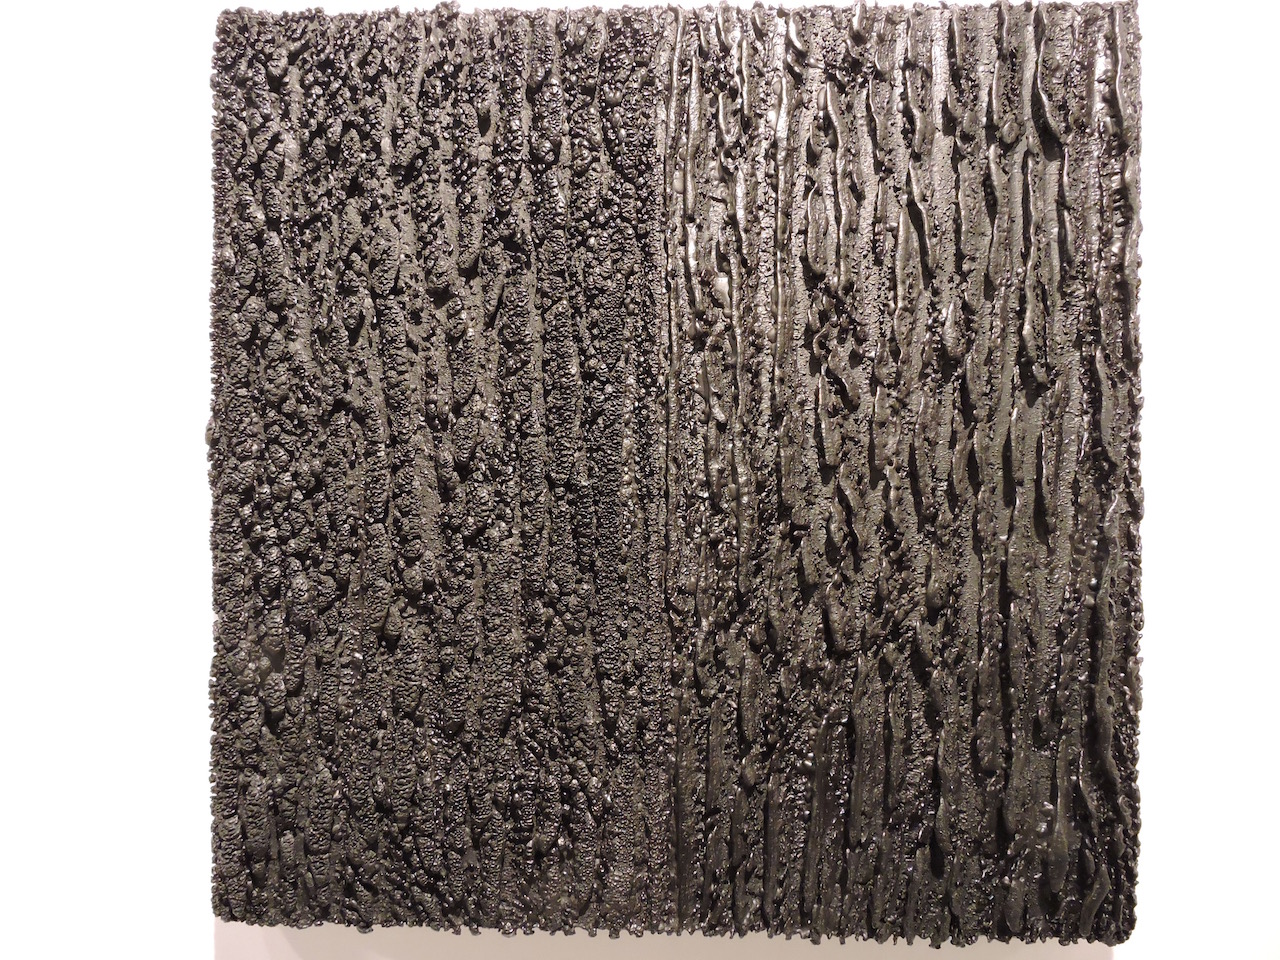 Artist Unknown, Black Abstraction (photo by author)